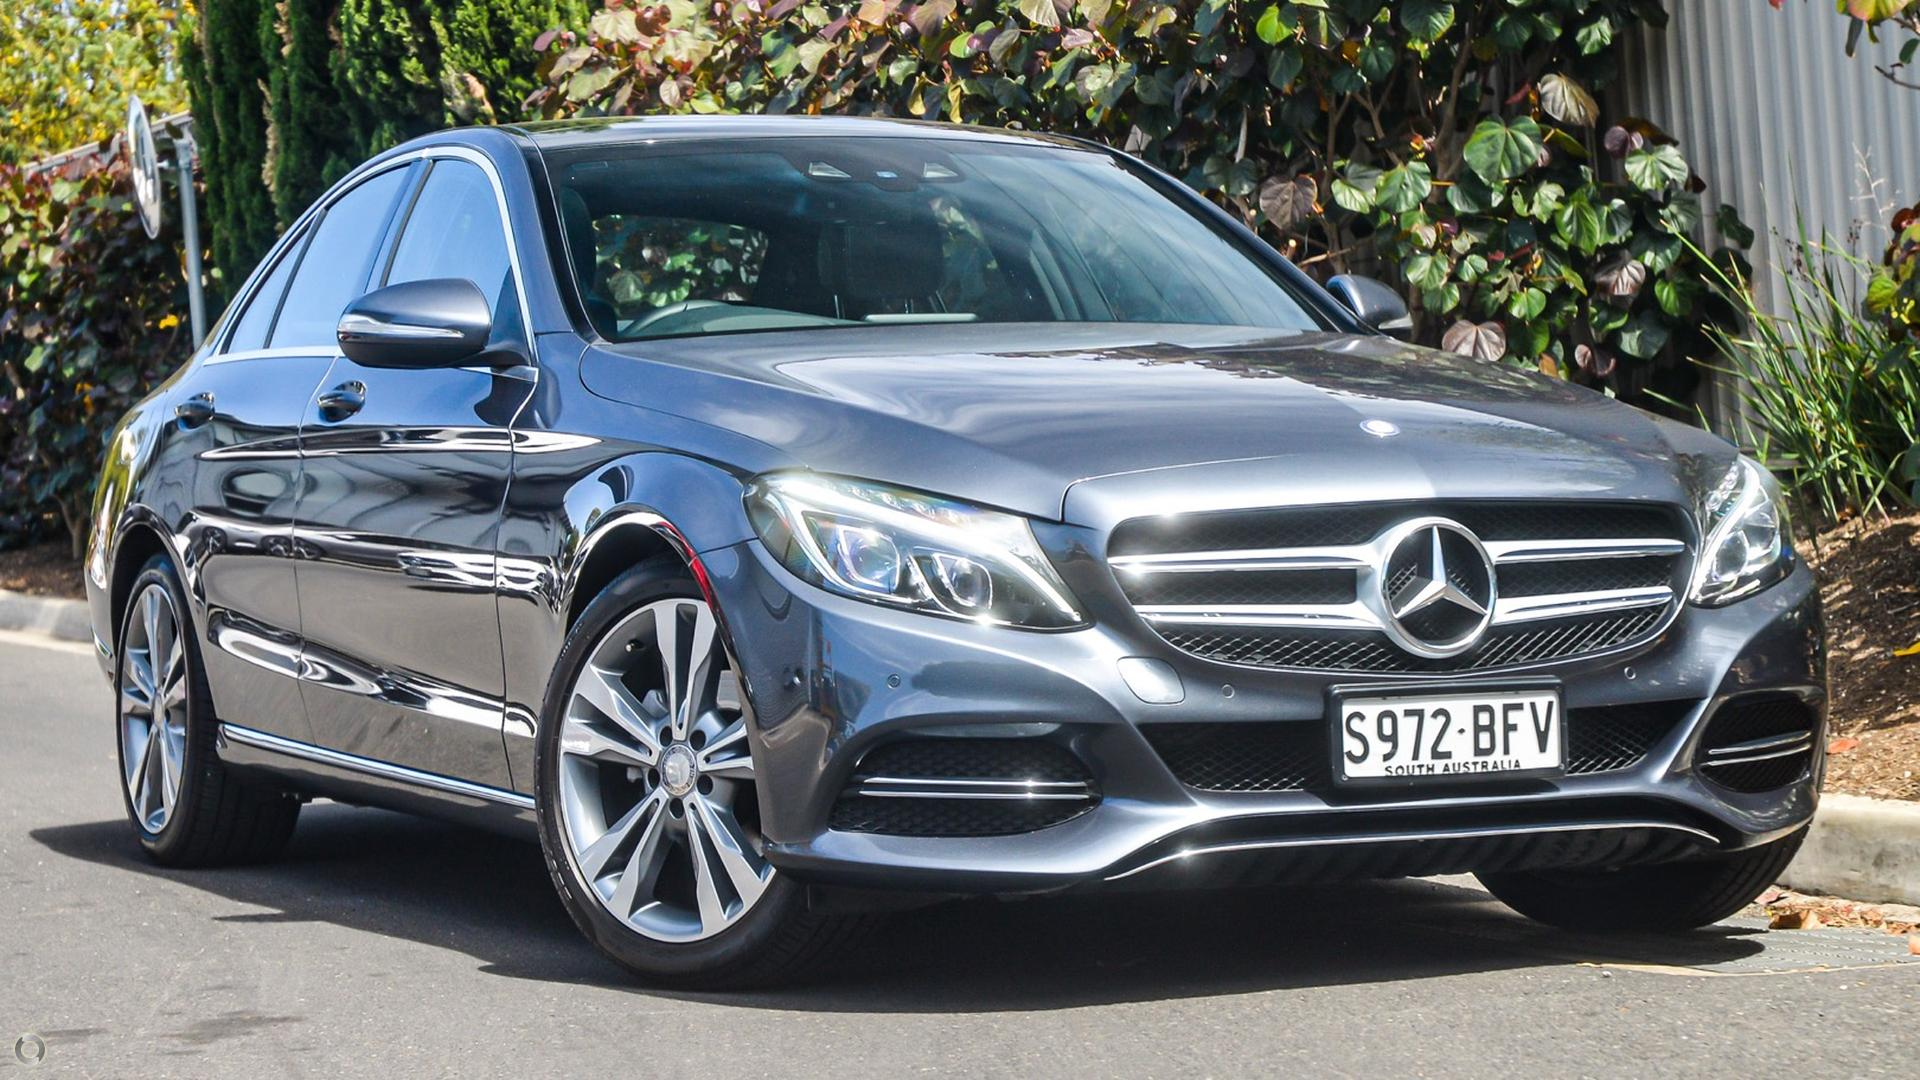 2015 Mercedes-Benz C 200 BLUETEC Sedan